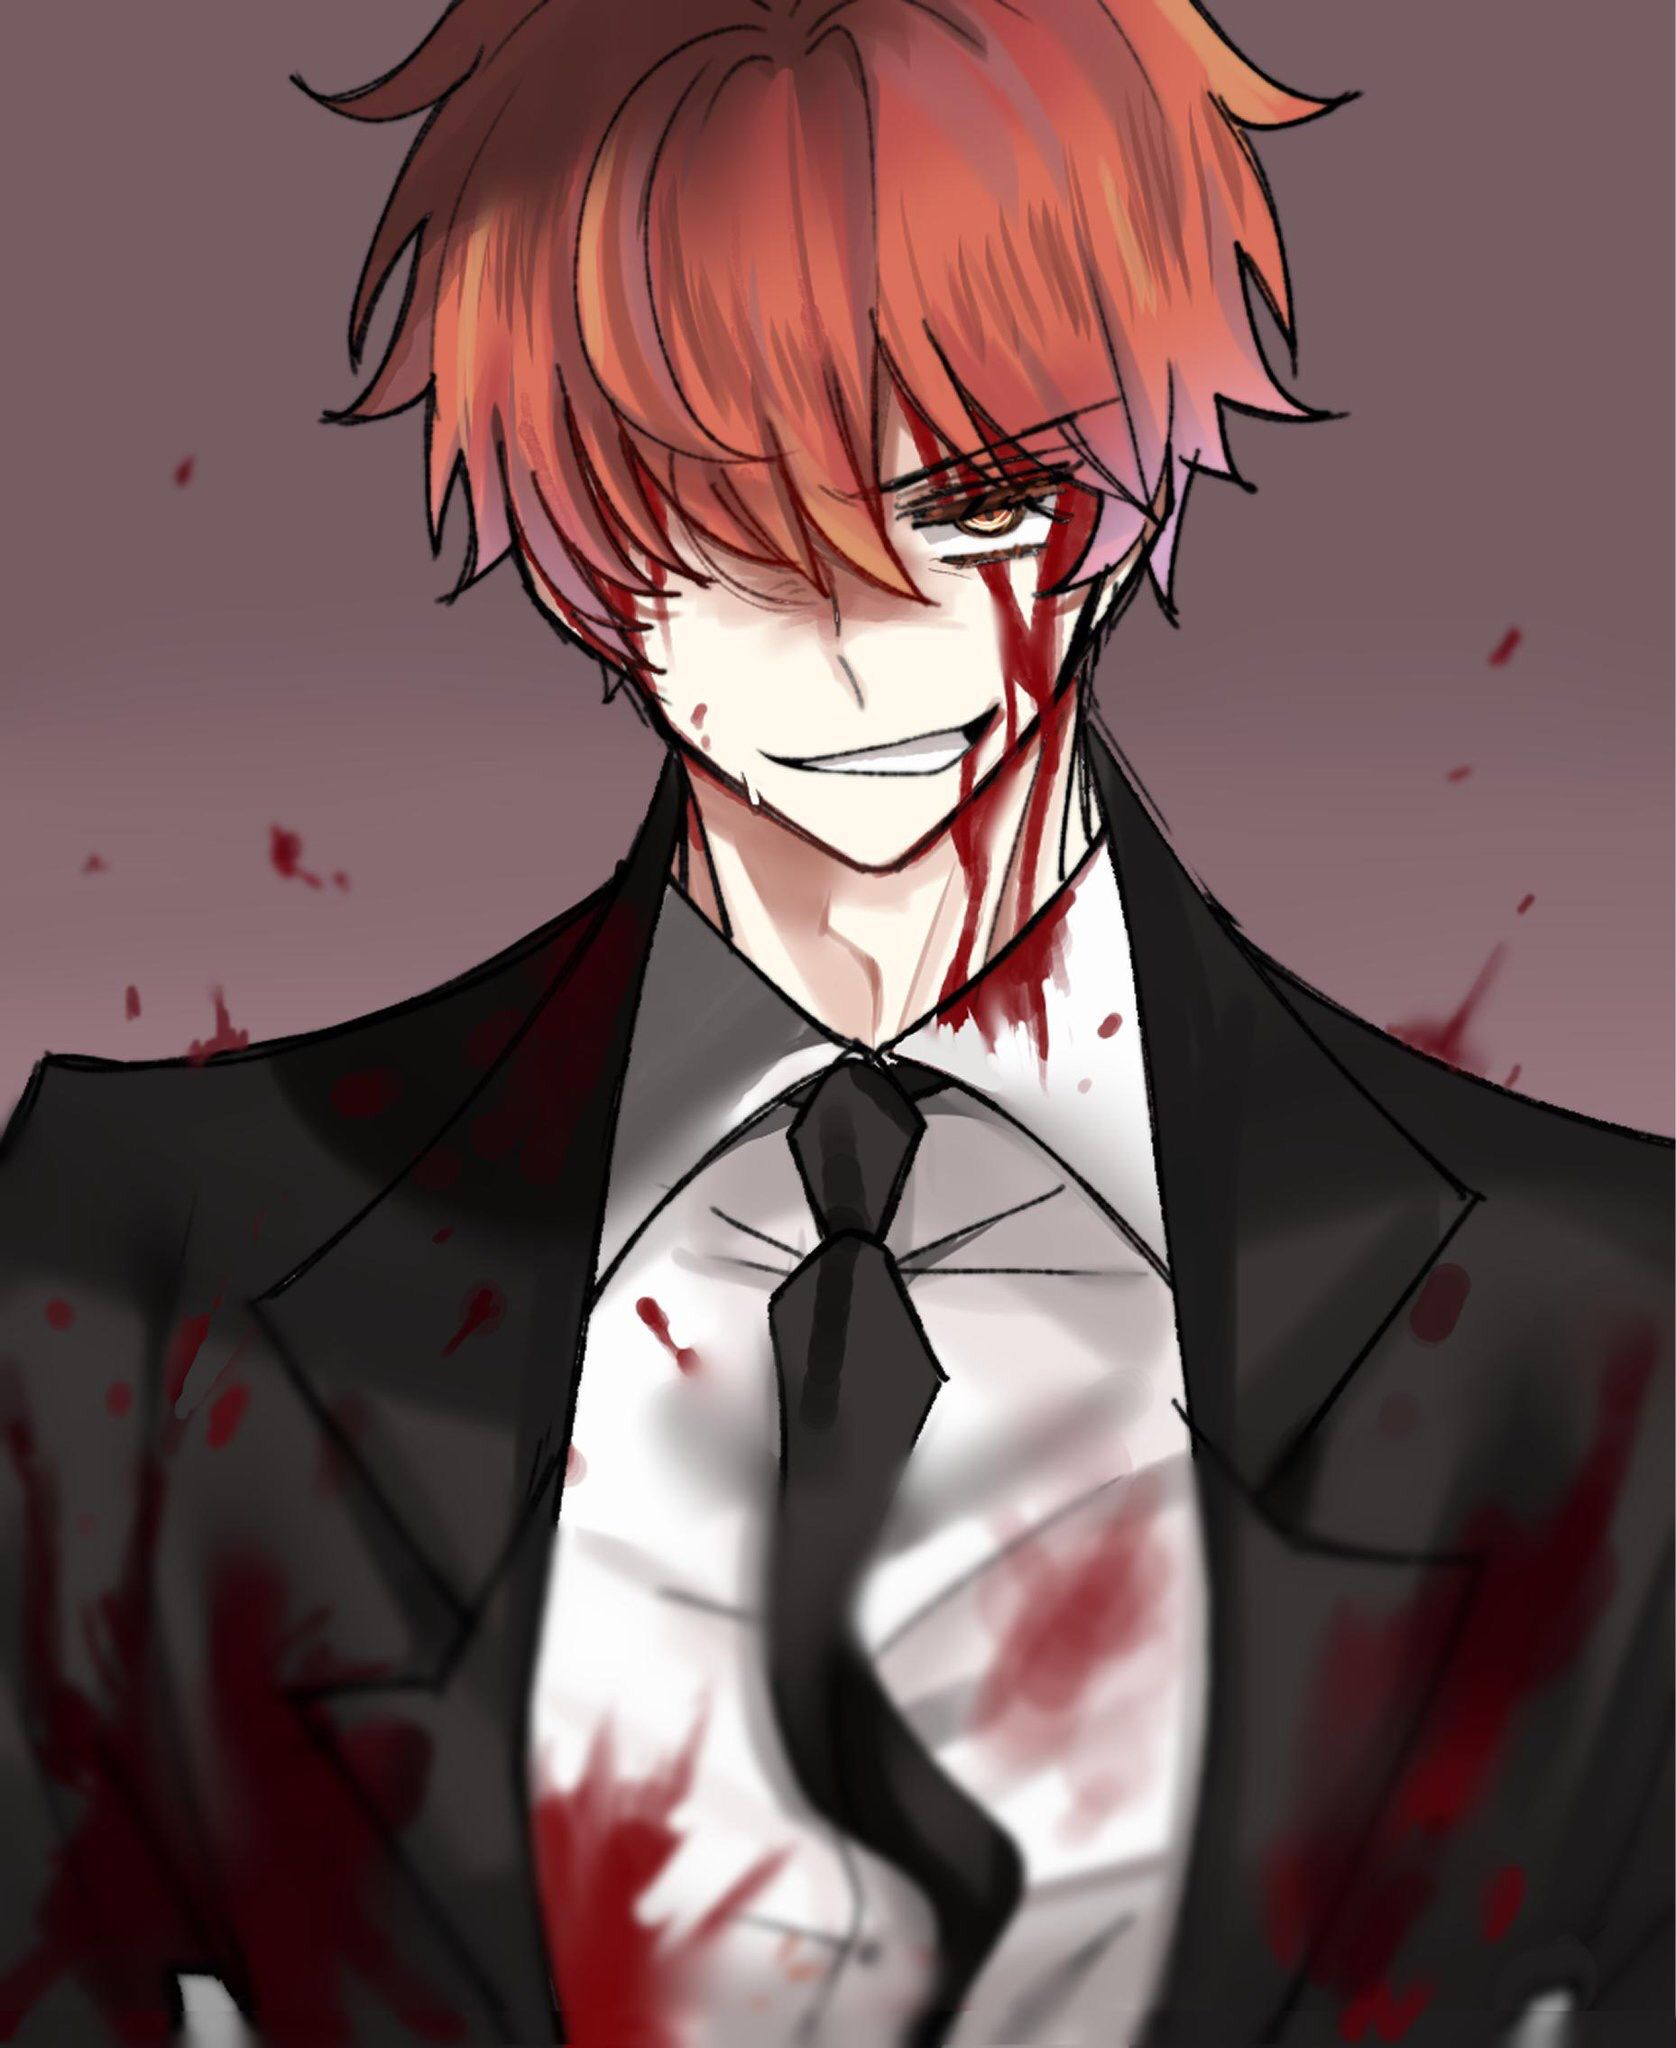 Pin by SunglowMoonRing on Mystic Messenger (With images